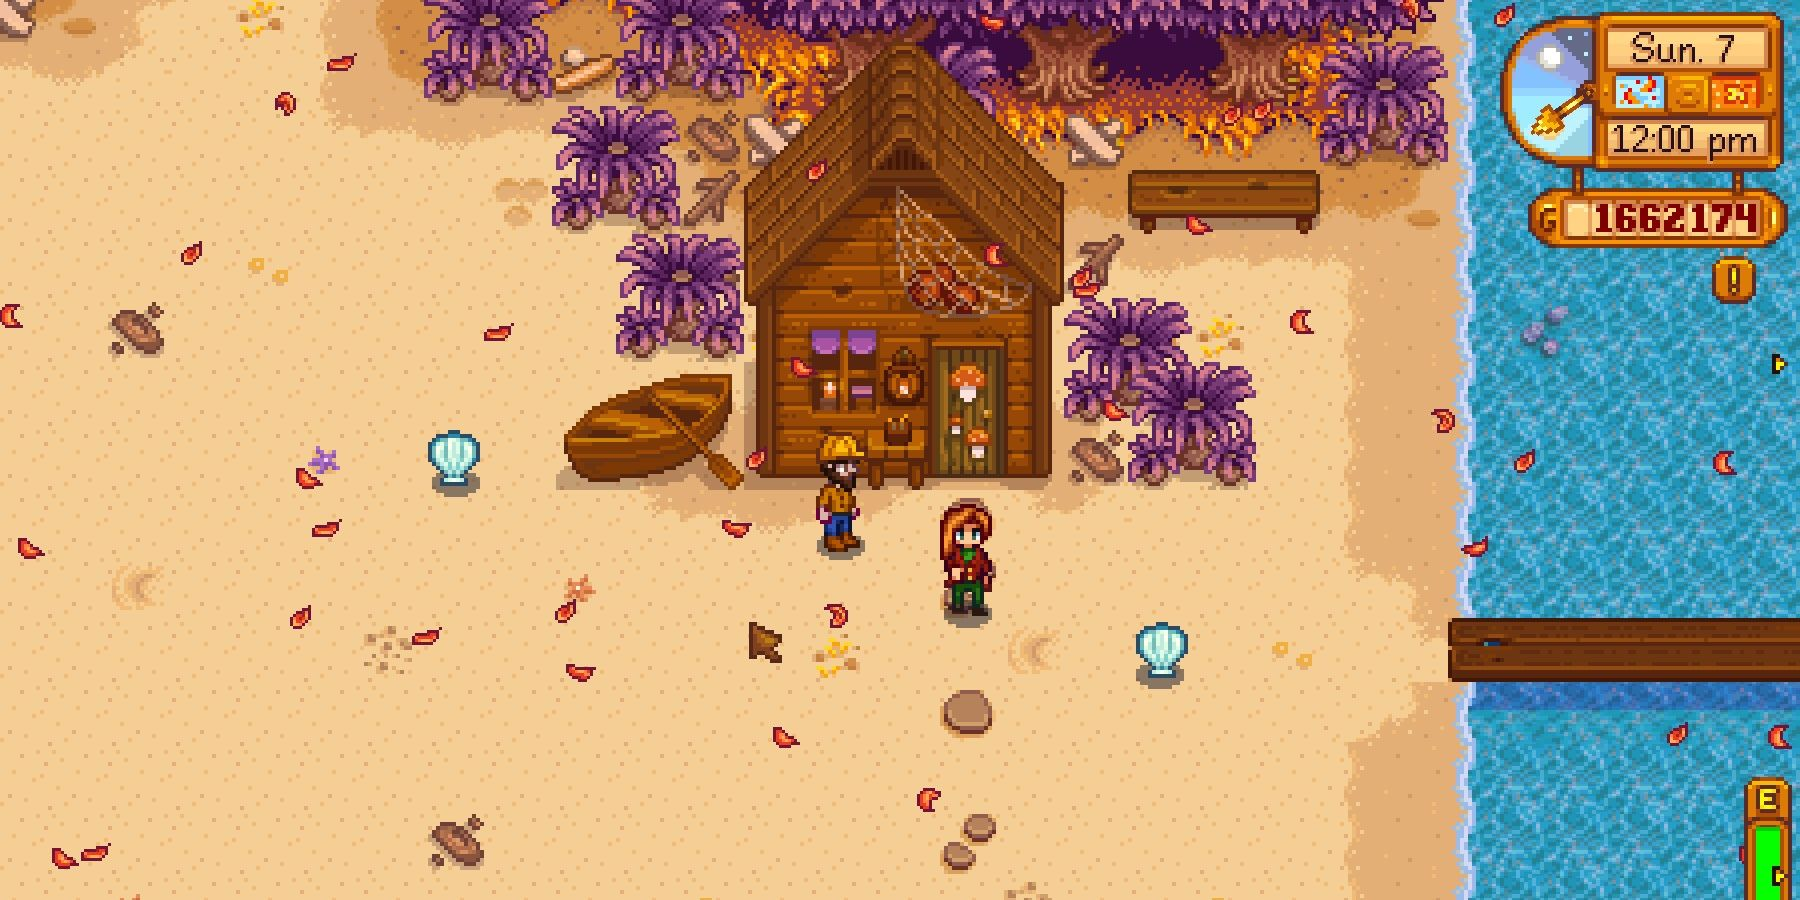 Stardew Valley: How to get Rainbow Shells and What They're For